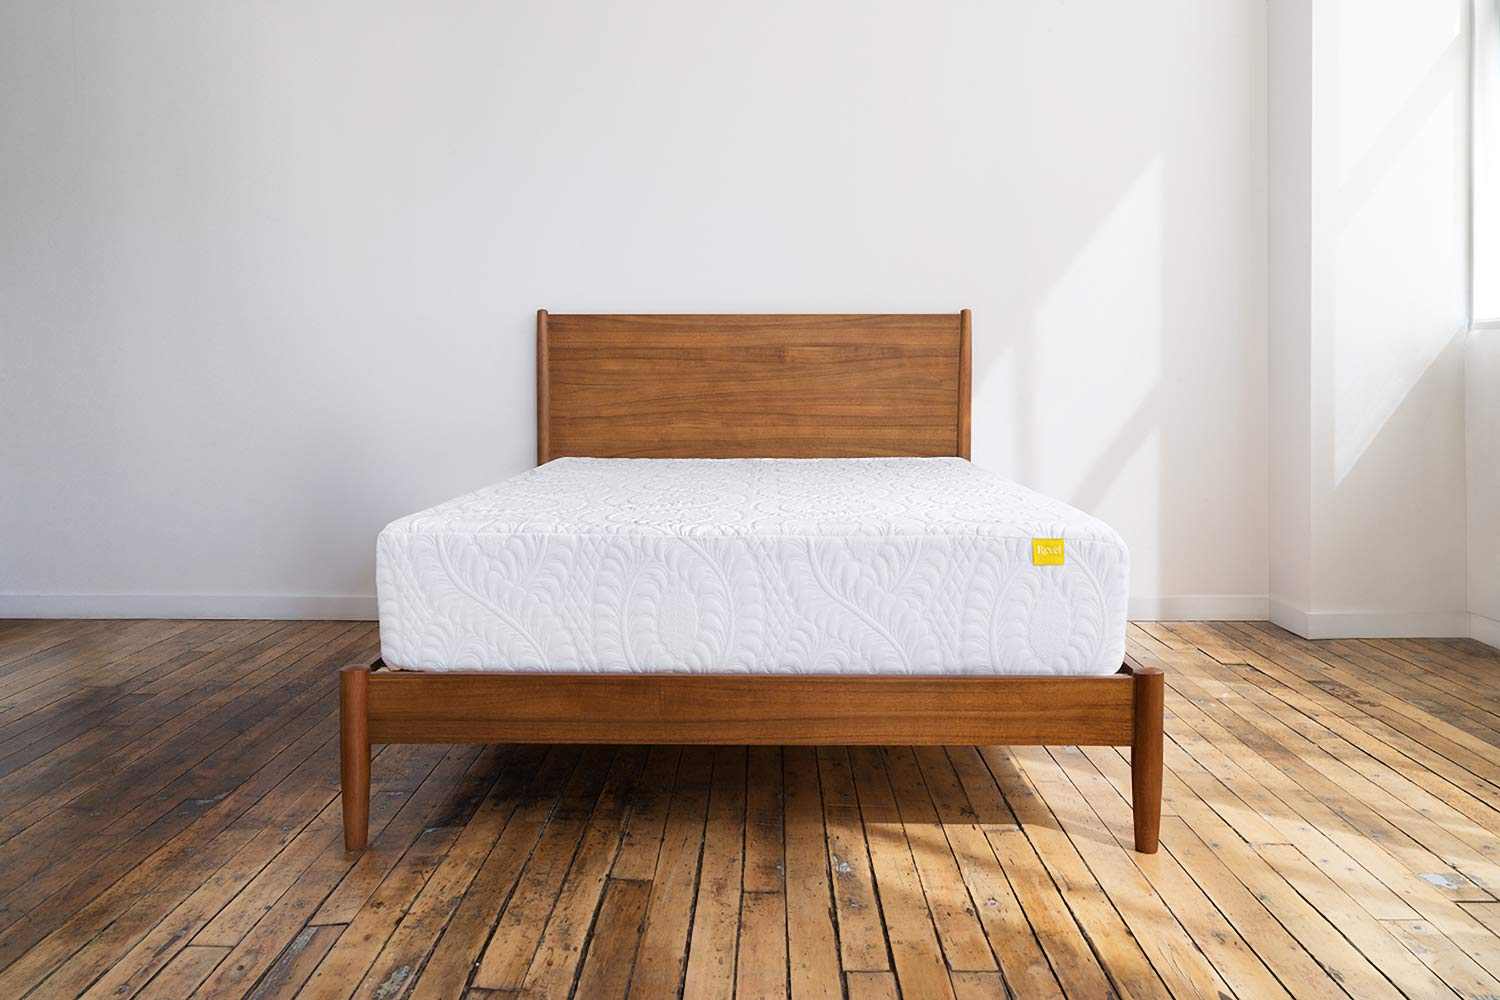 Revel Hybrid Cool Mattress (Twin XL), Featuring All Climate Cooling Gel Memory Foam and LiftTex Alternative Latex, Made in the USA with a 10-Year Warranty, Amazon Exclusive by Revel